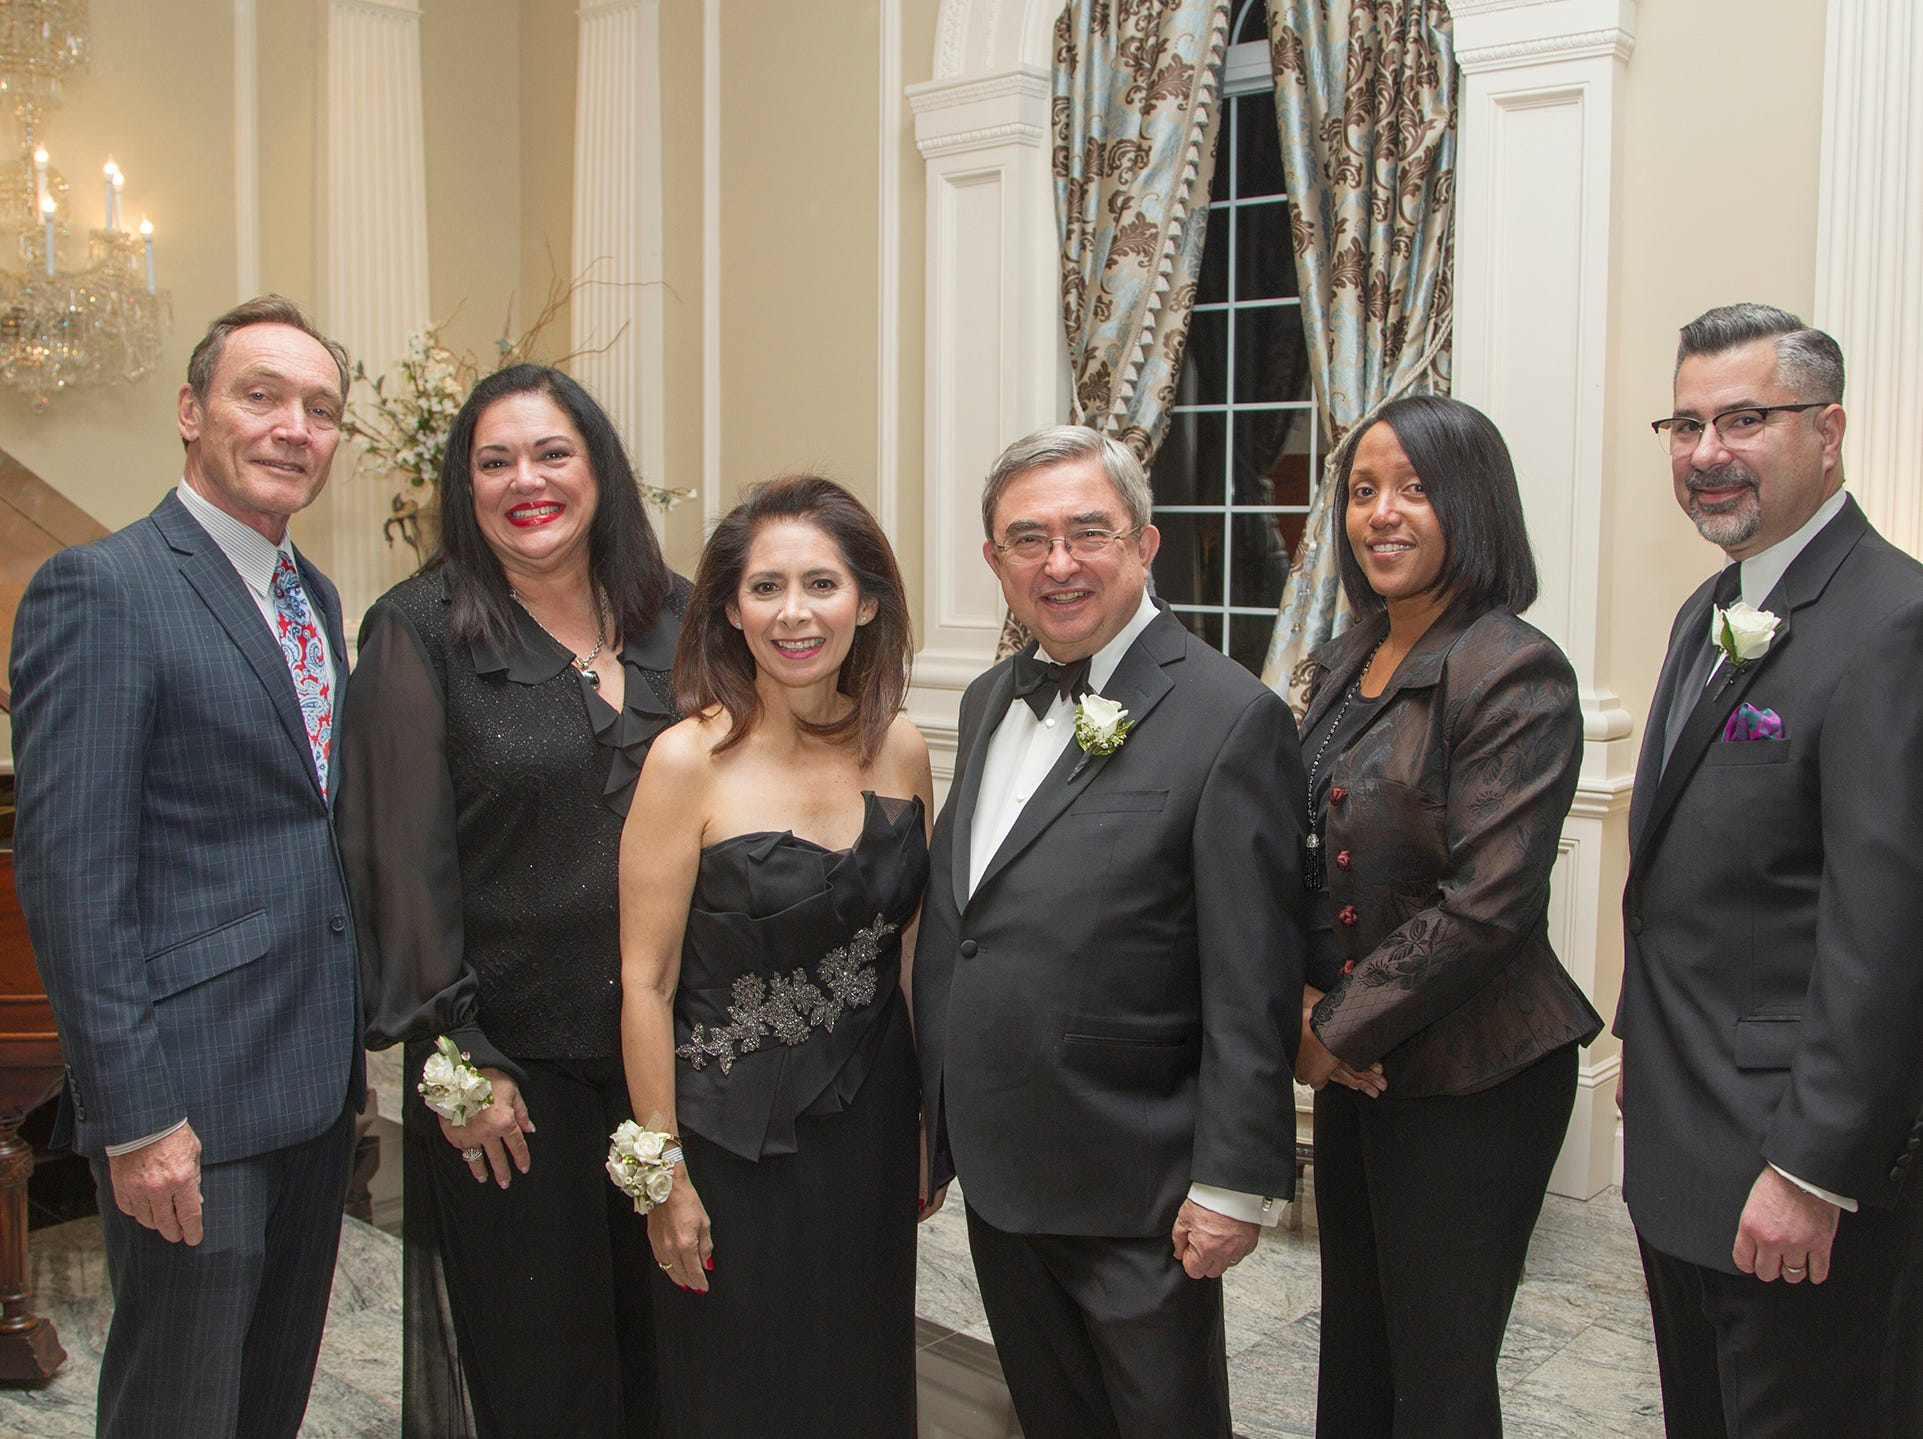 Tim Eustace, Marlene Caride, Dr.Jacqueline Ehlert-Mercer, Dr.Peter Mercer, Lynn Haynes, AJ Sabath. Ramapo College held its 37th Annual Distinguished Citizens Dinner at Rockleigh Country Club. 03/02/2019